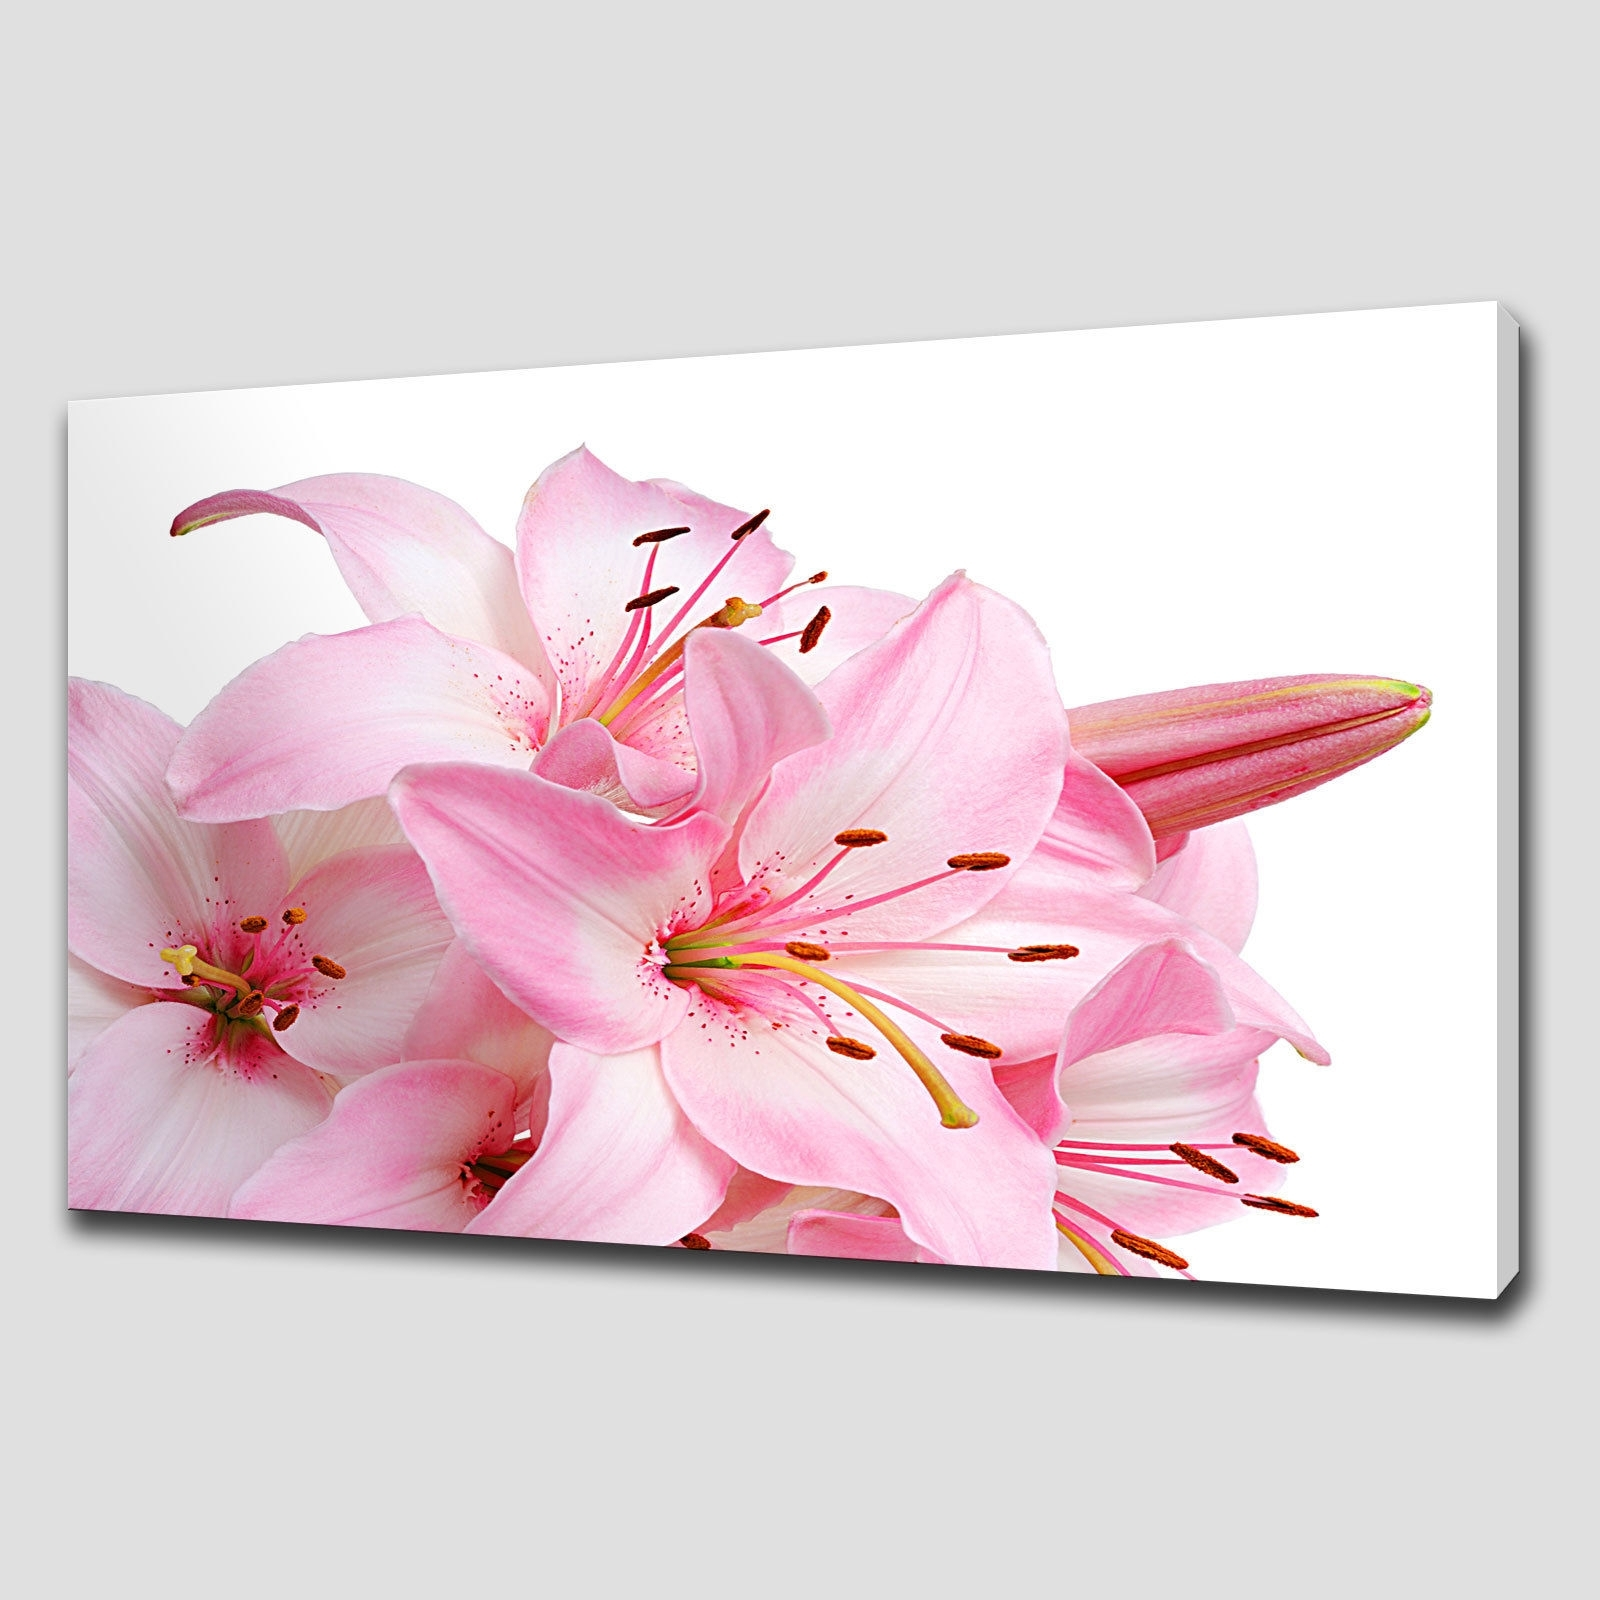 Wall Art Designs: Canvas Floral Wall Art Flowers Paintings Large In Recent Flowers Framed Art Prints (View 14 of 15)